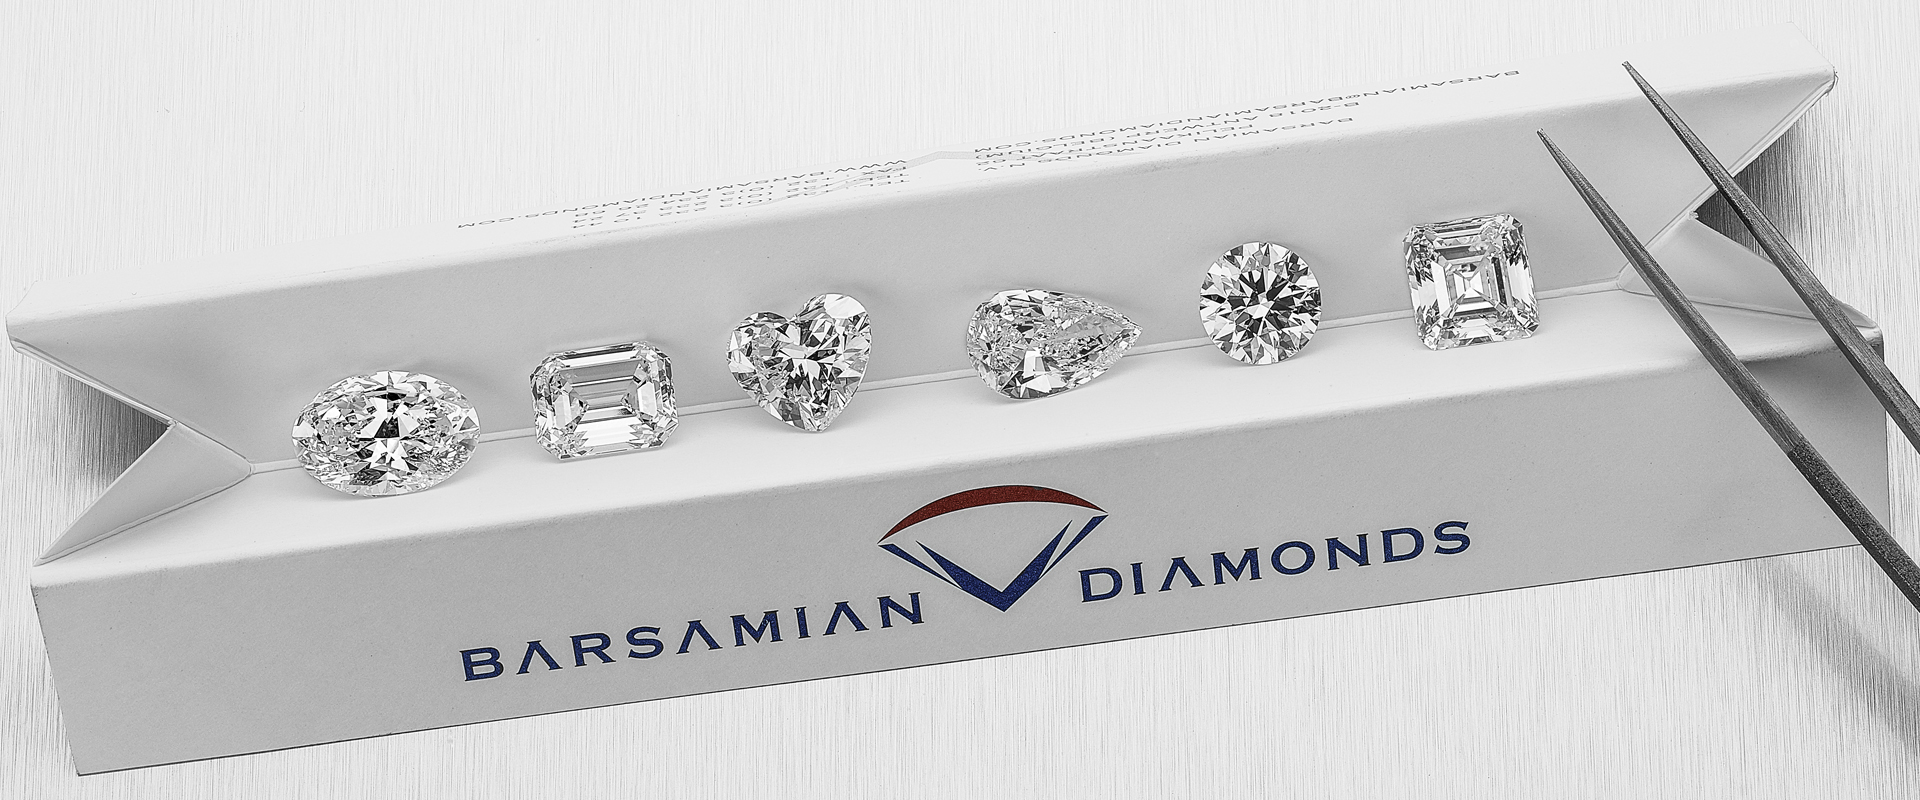 Barsamian Diamonds Logo & Diamonds